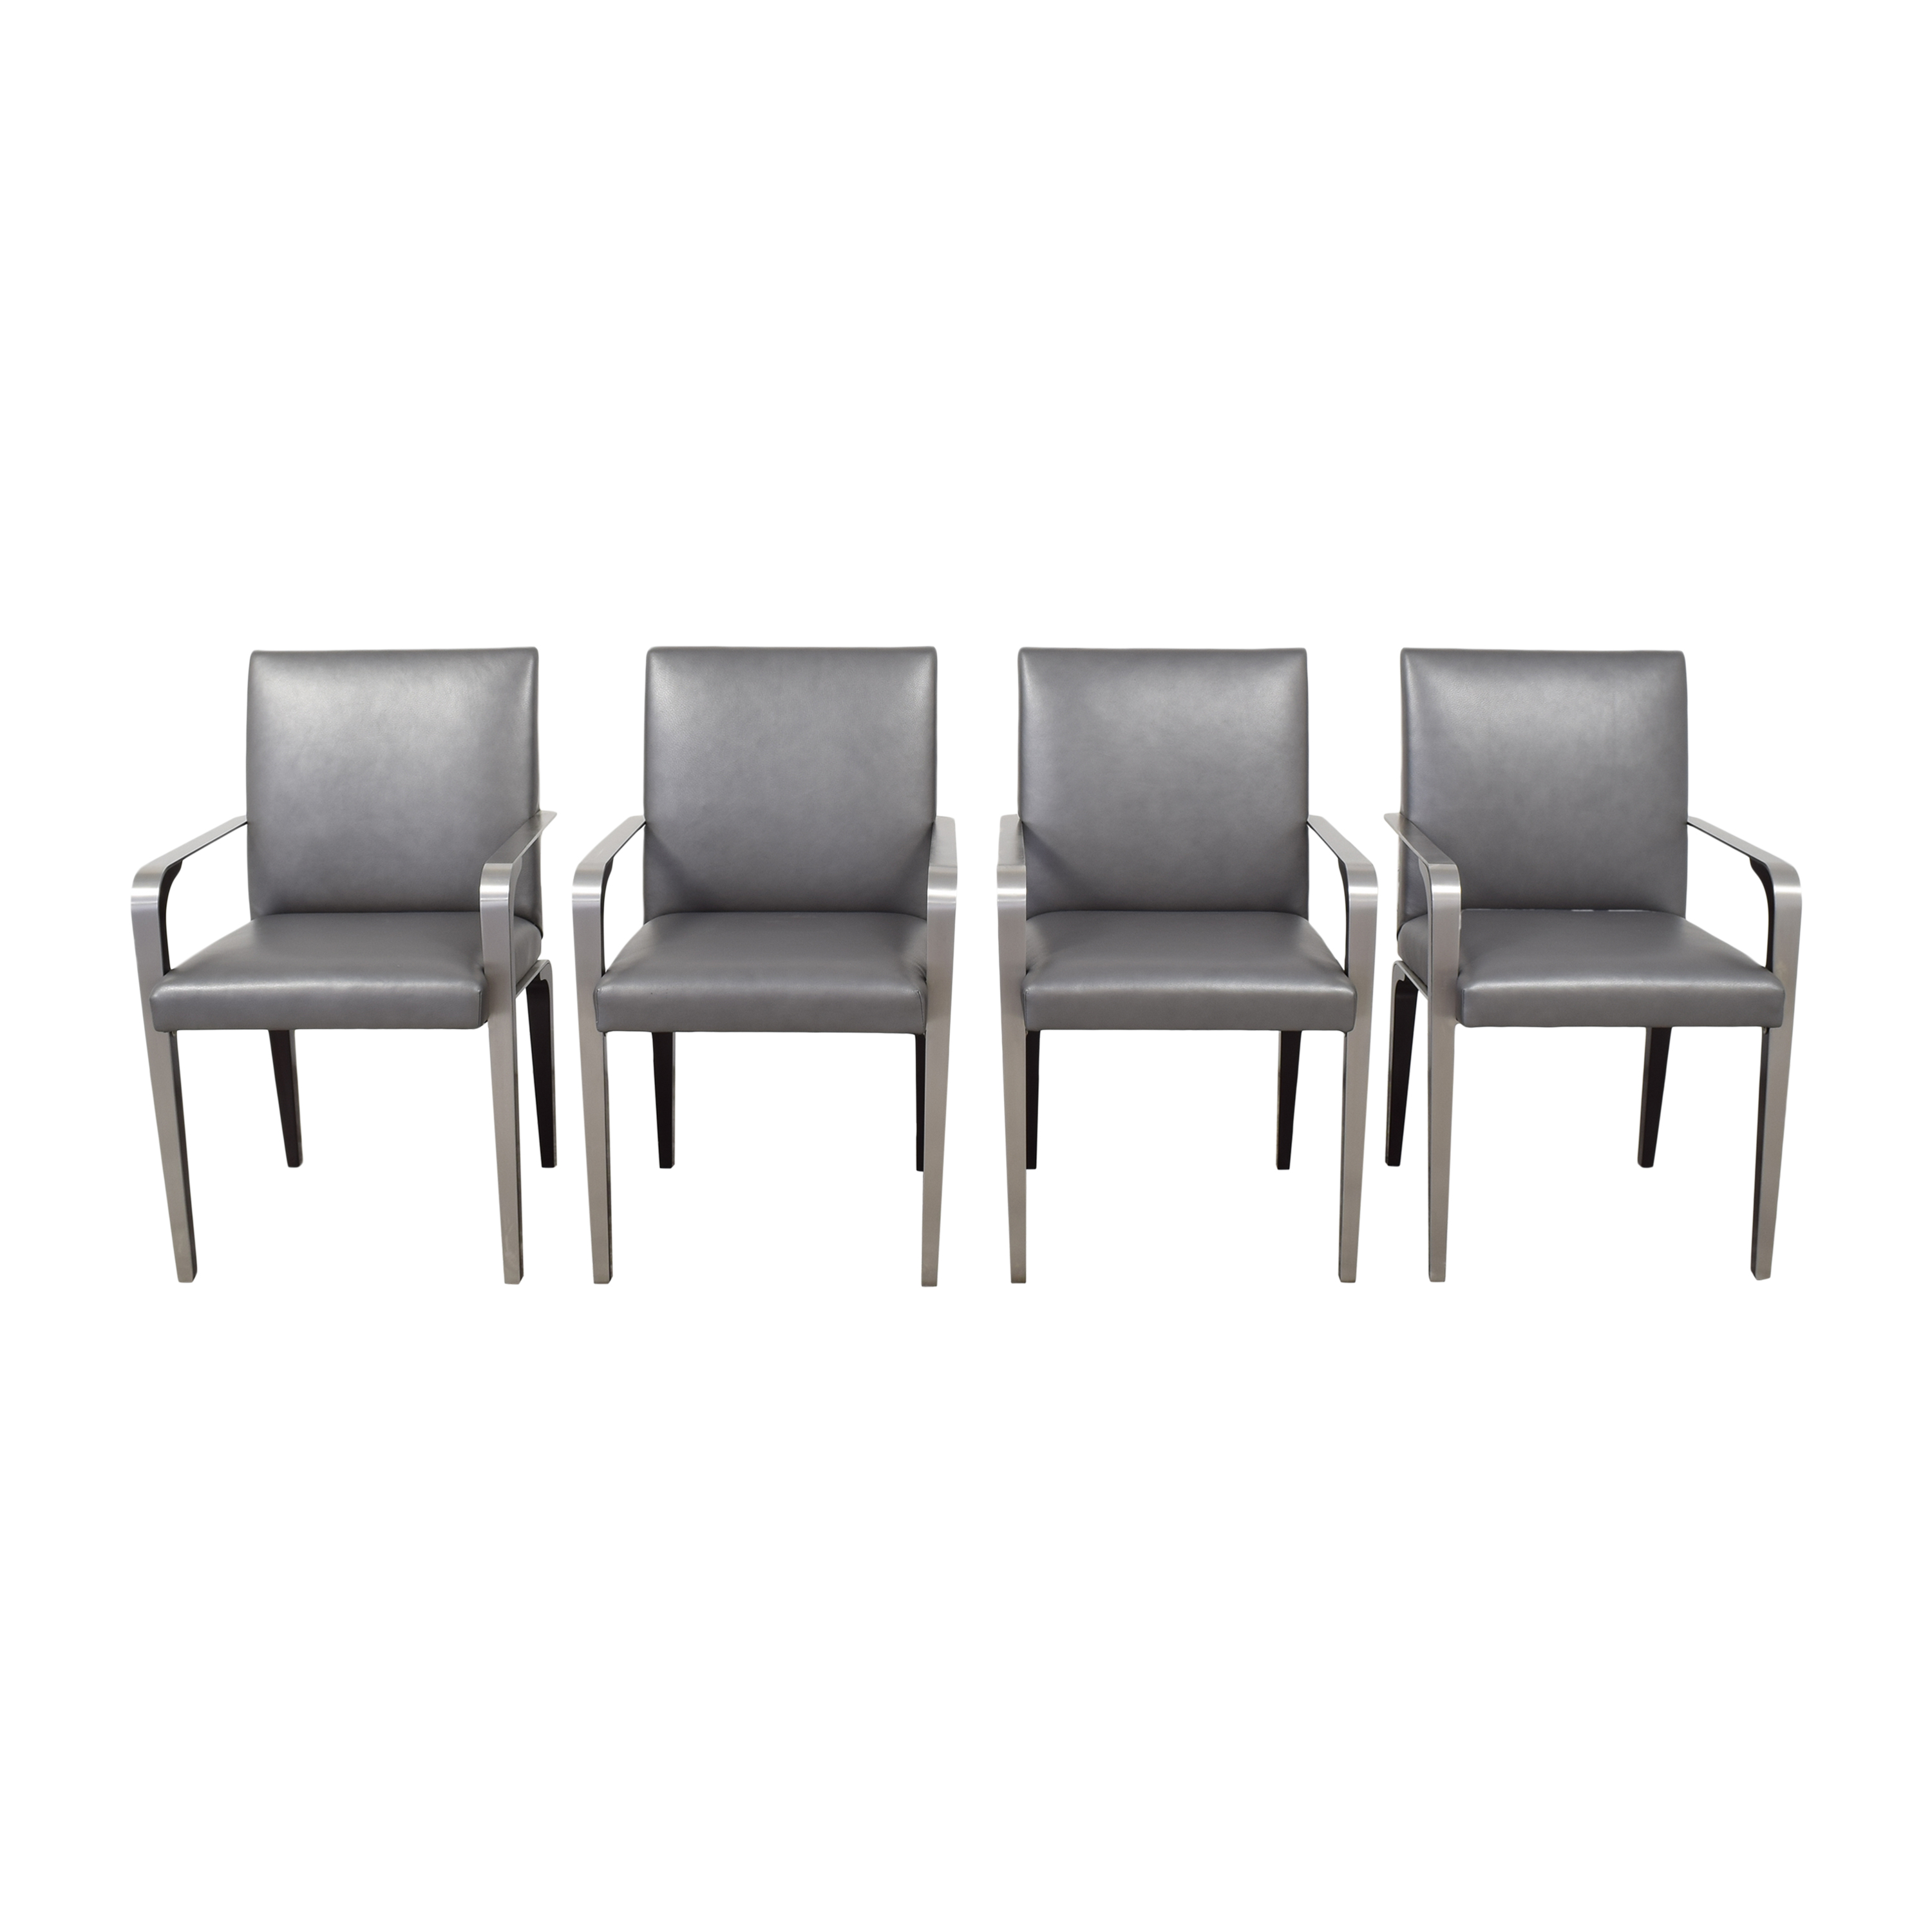 Custom Dining Chairs second hand